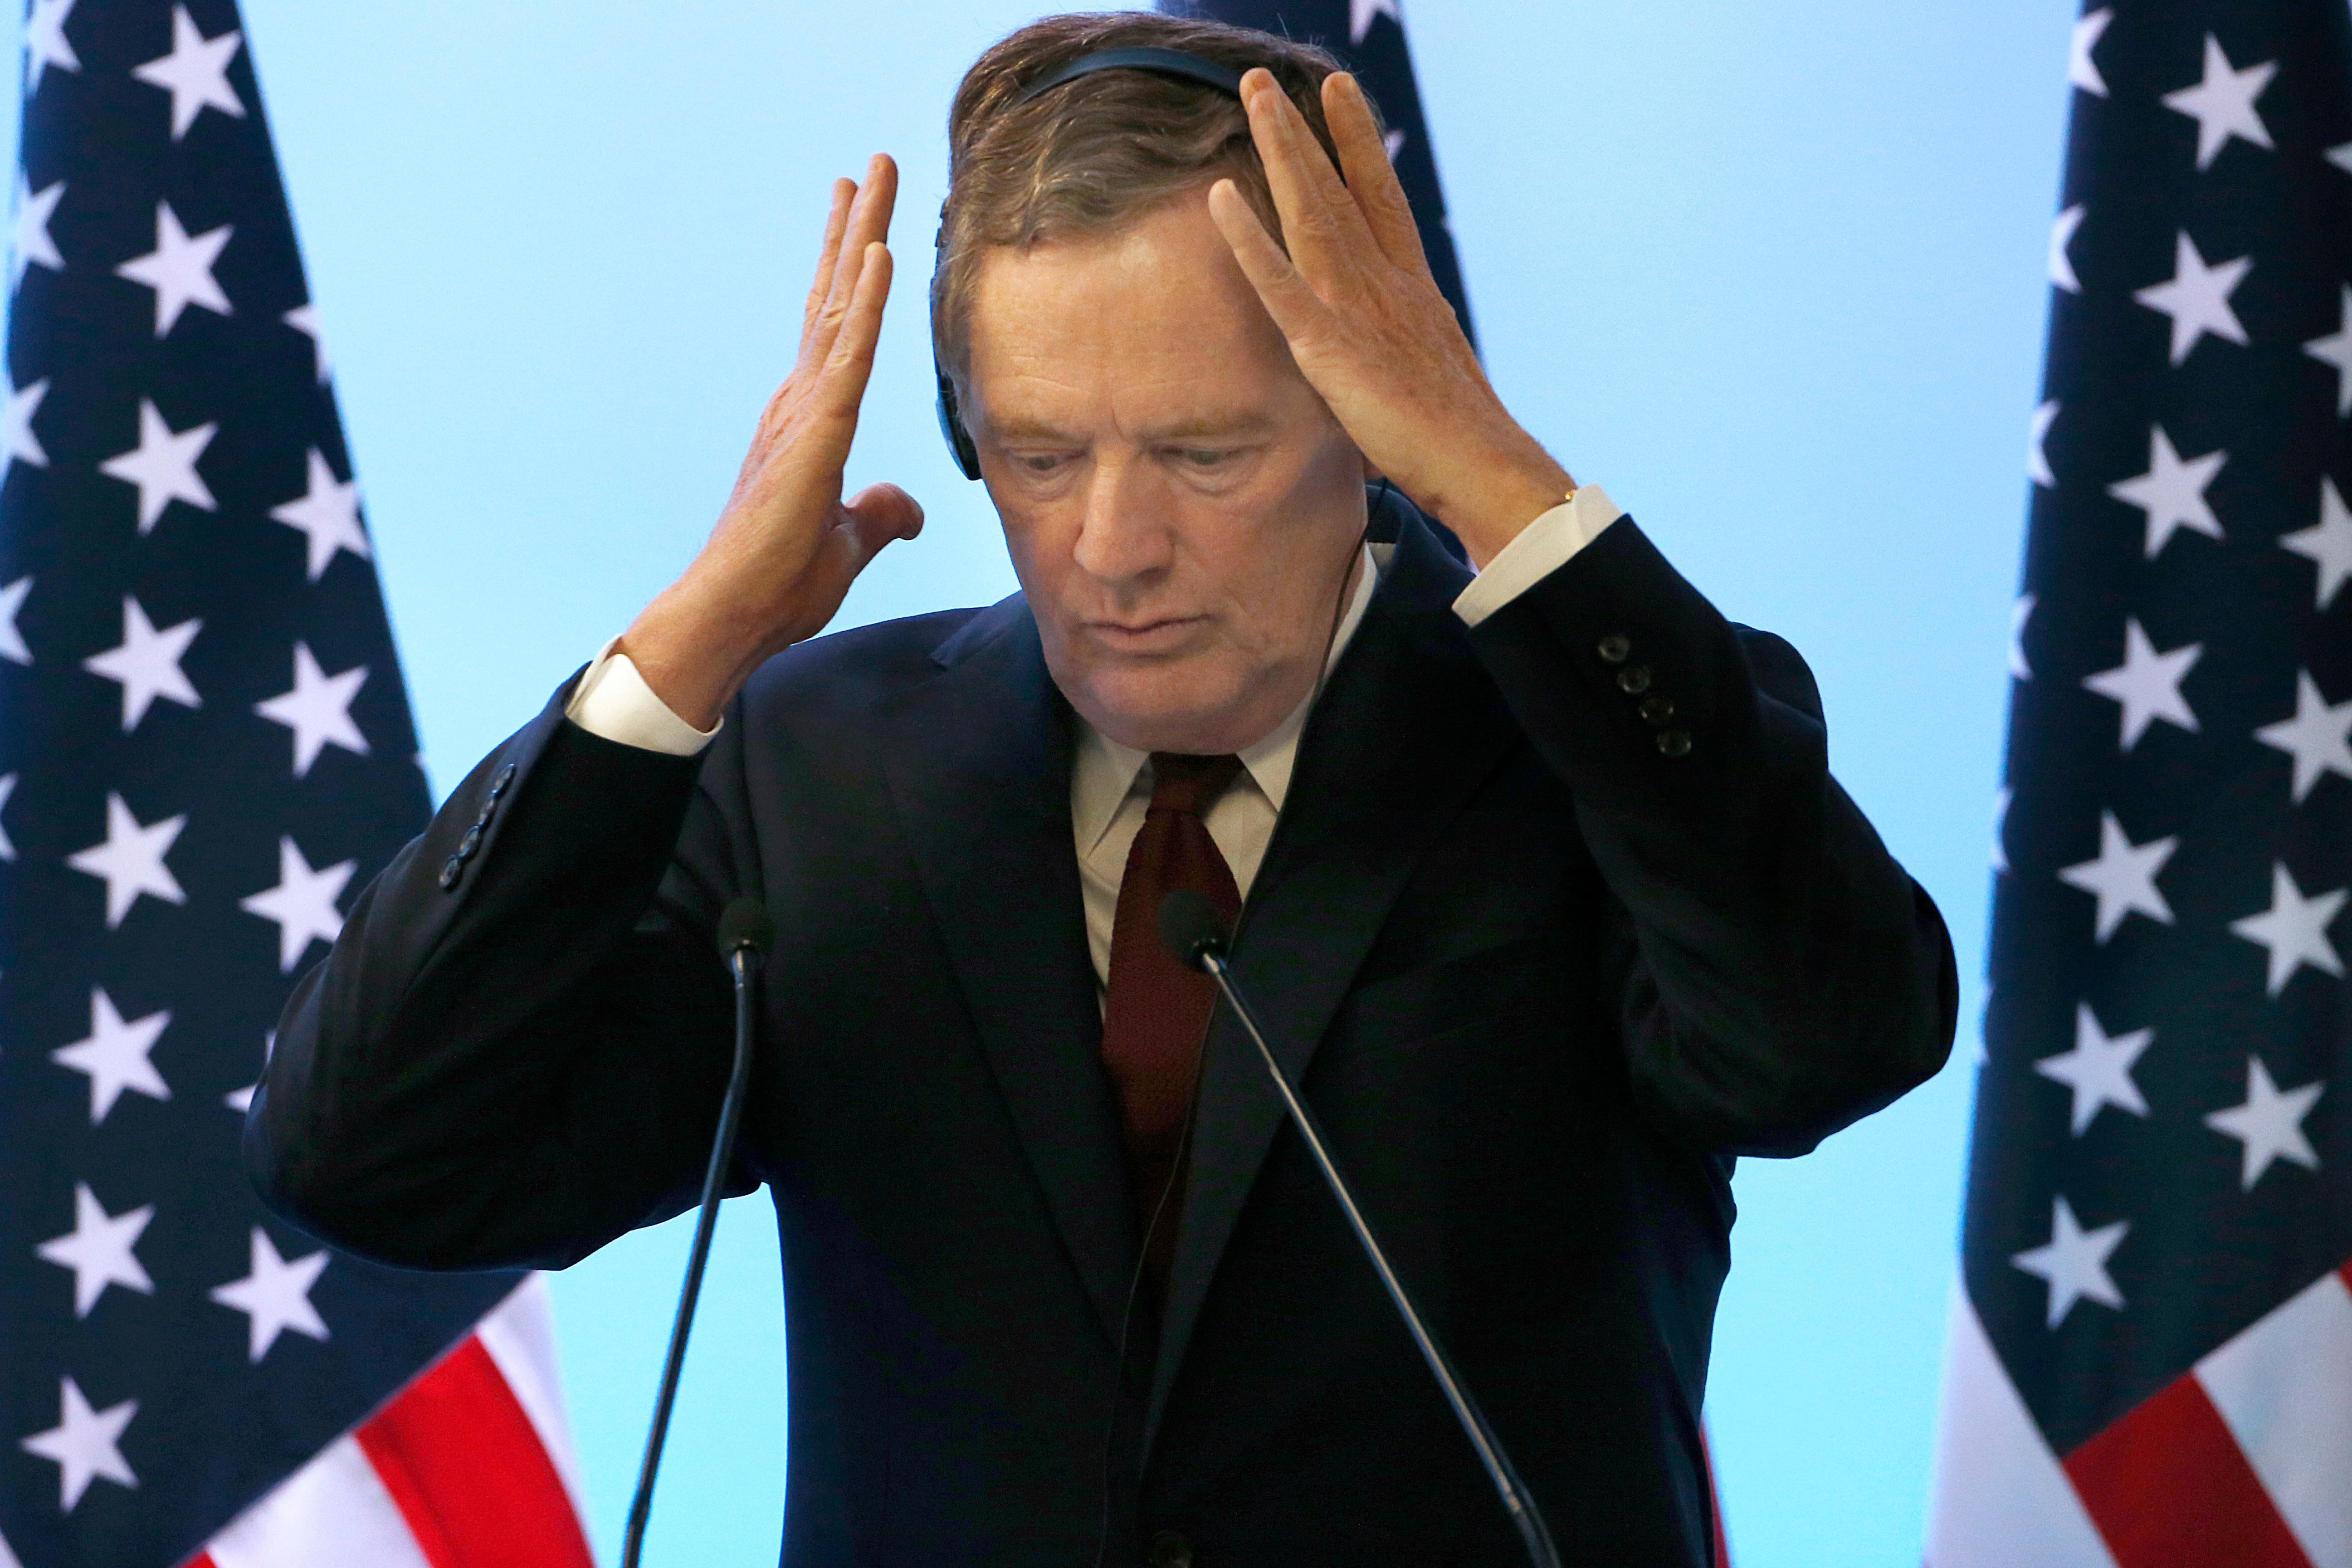 U.S. Trade Representative Robert Lighthizer adjusts his headsead during a press conference regarding the seventh round of NAFTA renegotiations in Mexico City, Monday, March 5, 2018. (AP Photo / Marco Ugarte)